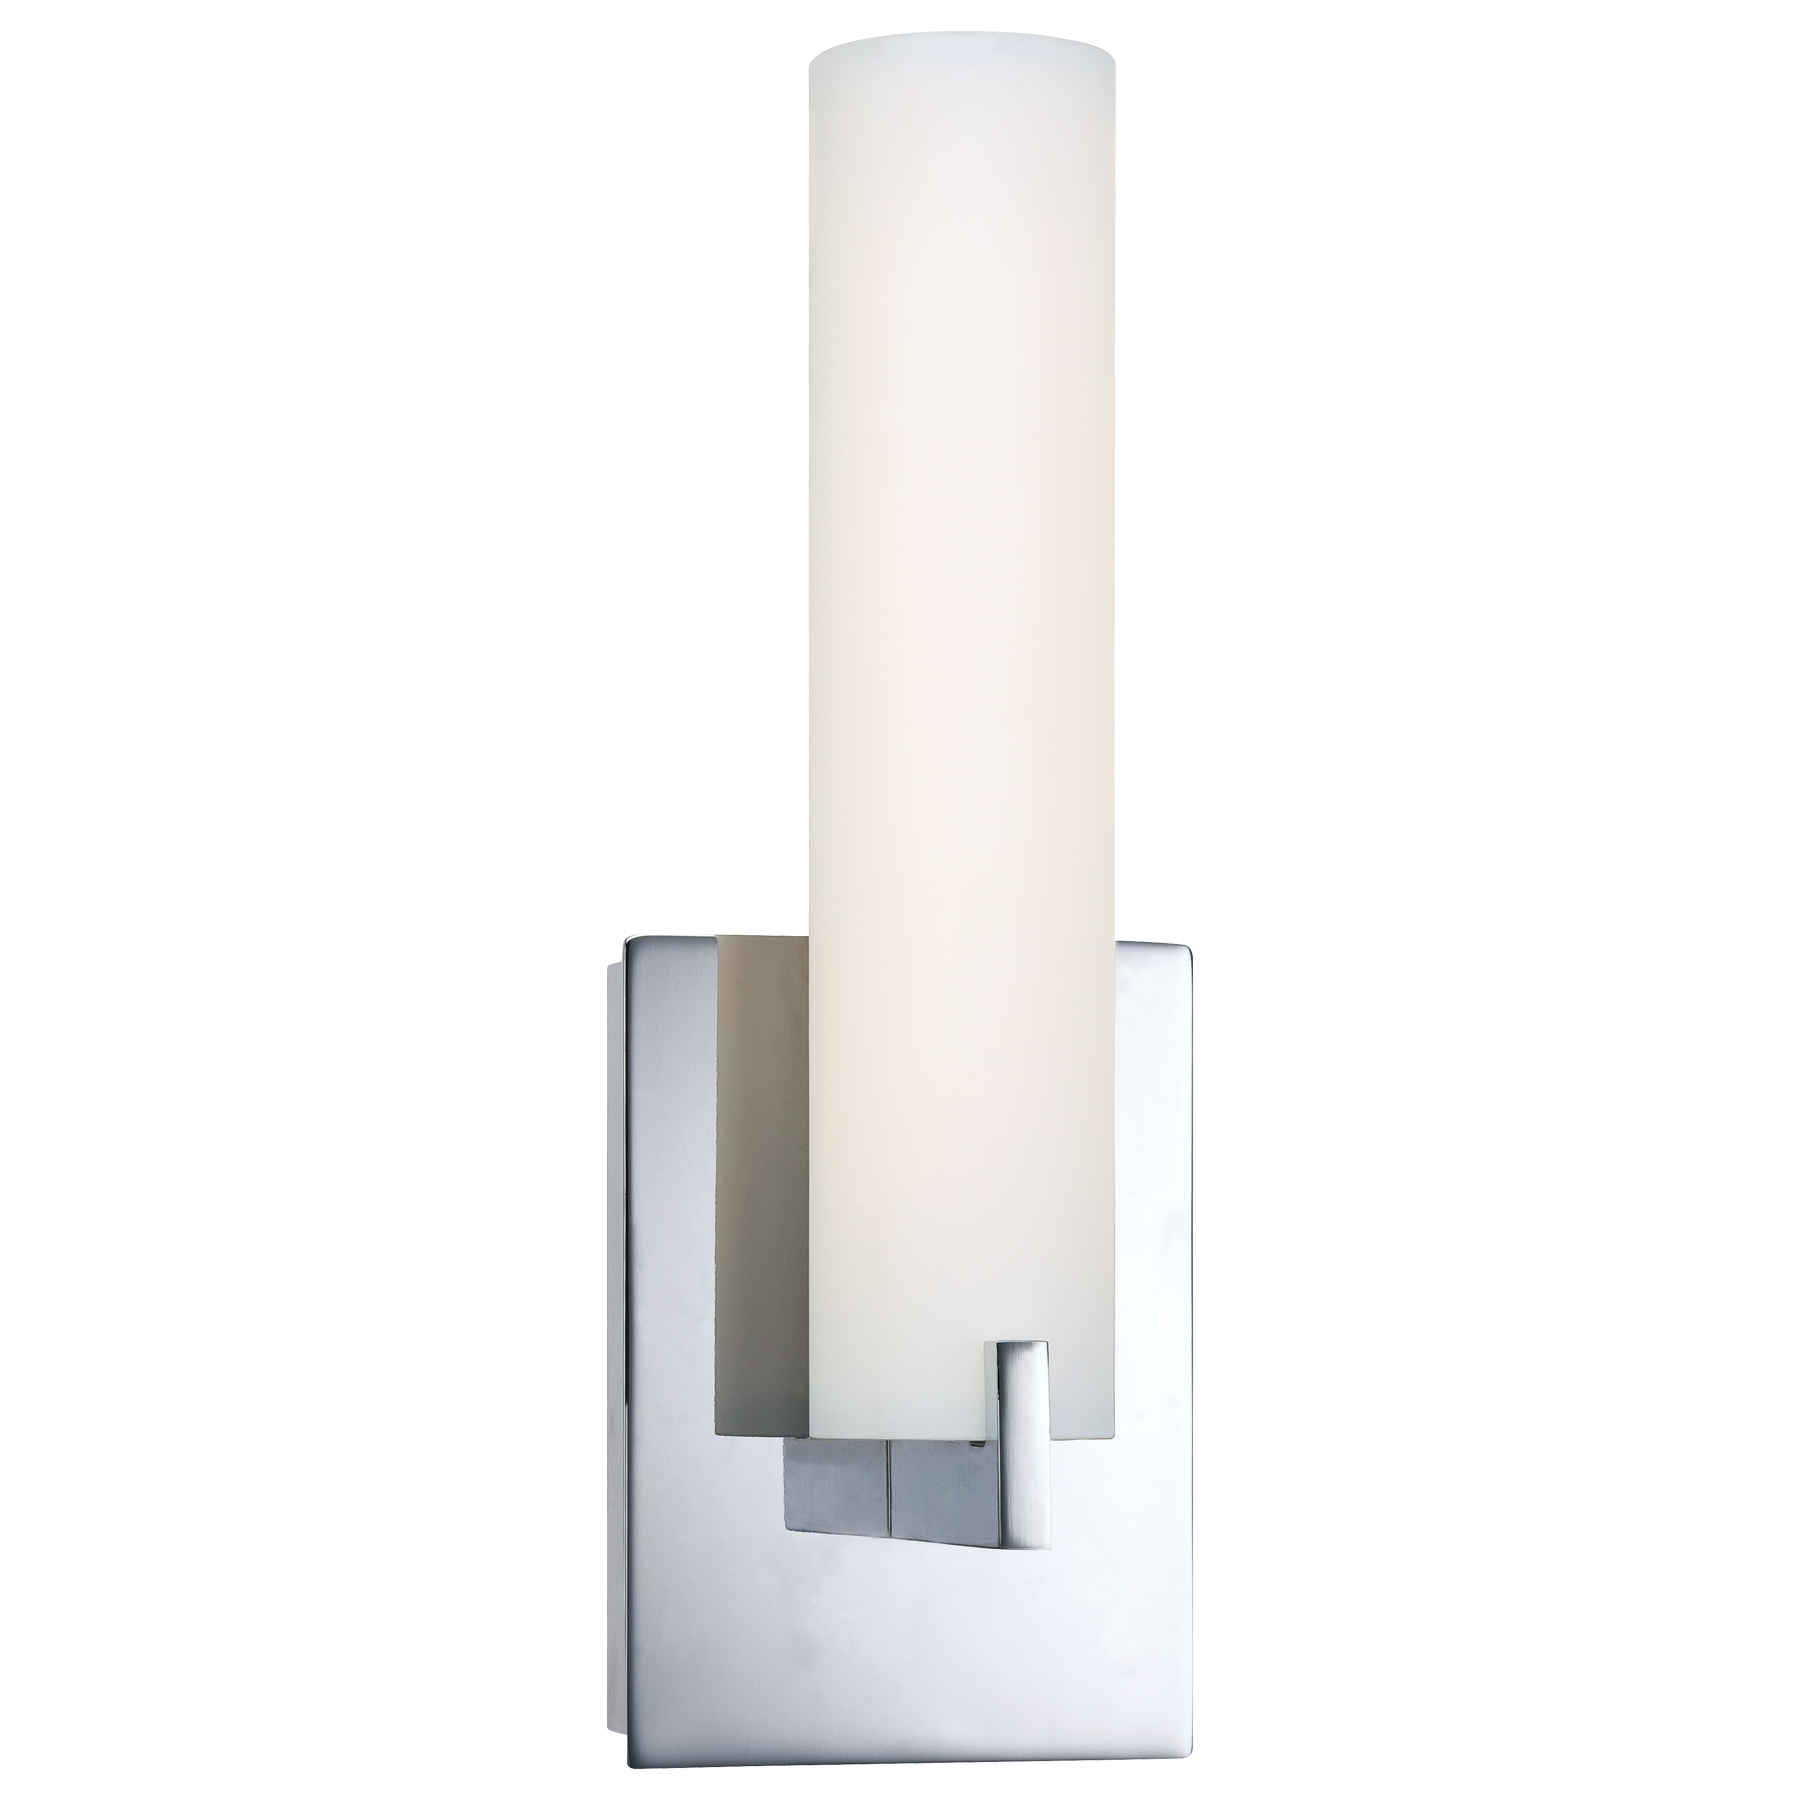 Bathroom Wall Sconces Pictures : Tube LED Vanity Wall Sconce by George Kovacs P5040-077-L